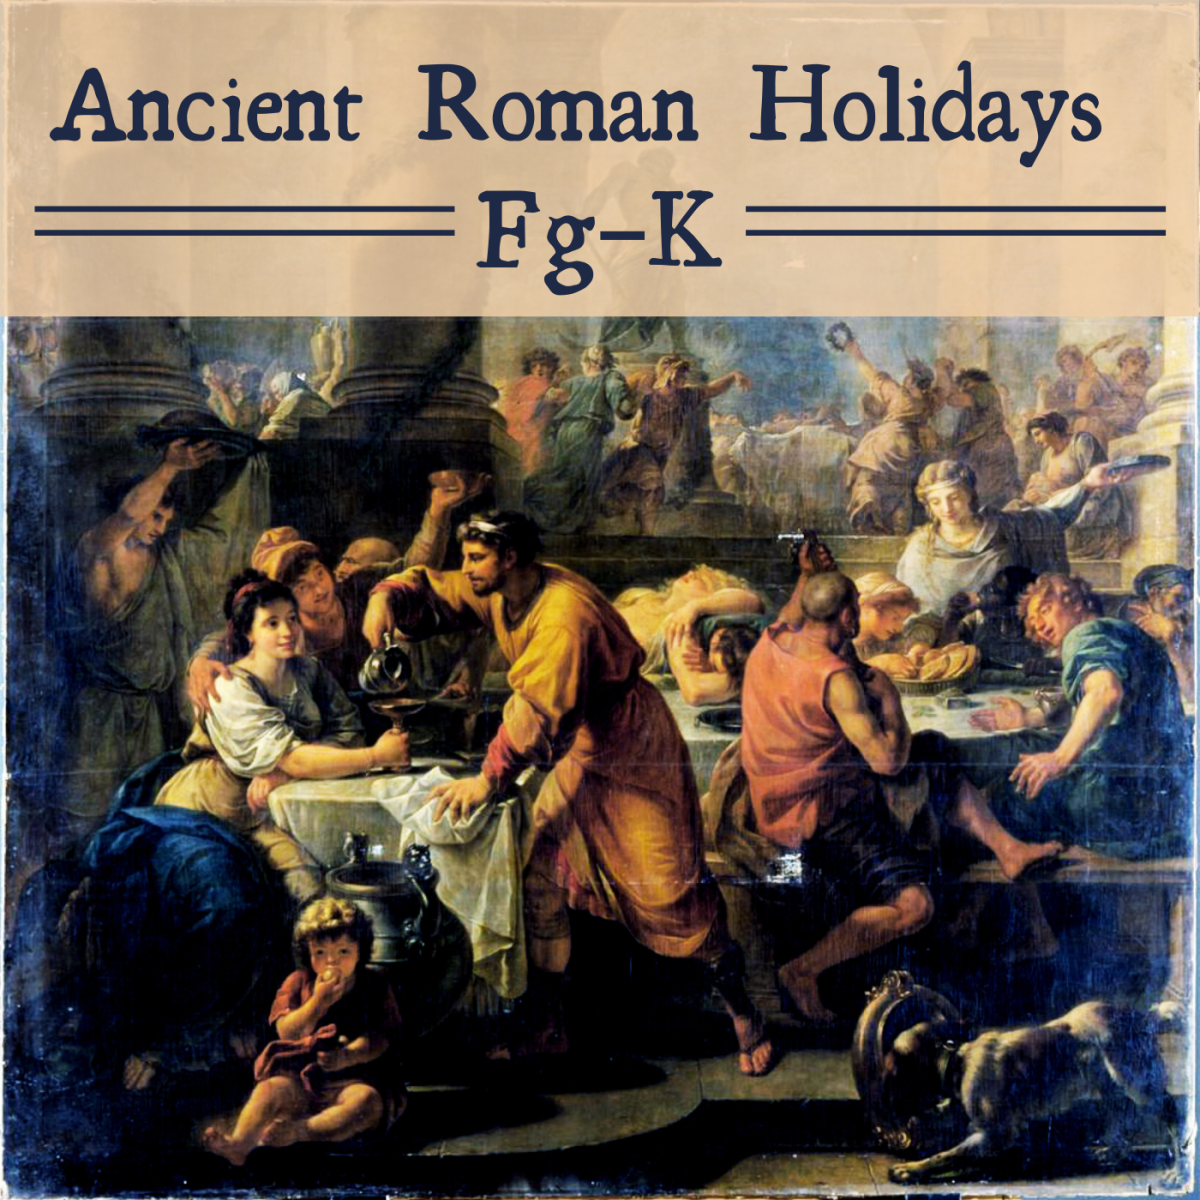 Ancient Rome was home to a diverse array of holidays, many of which existed to celebrate various deities.